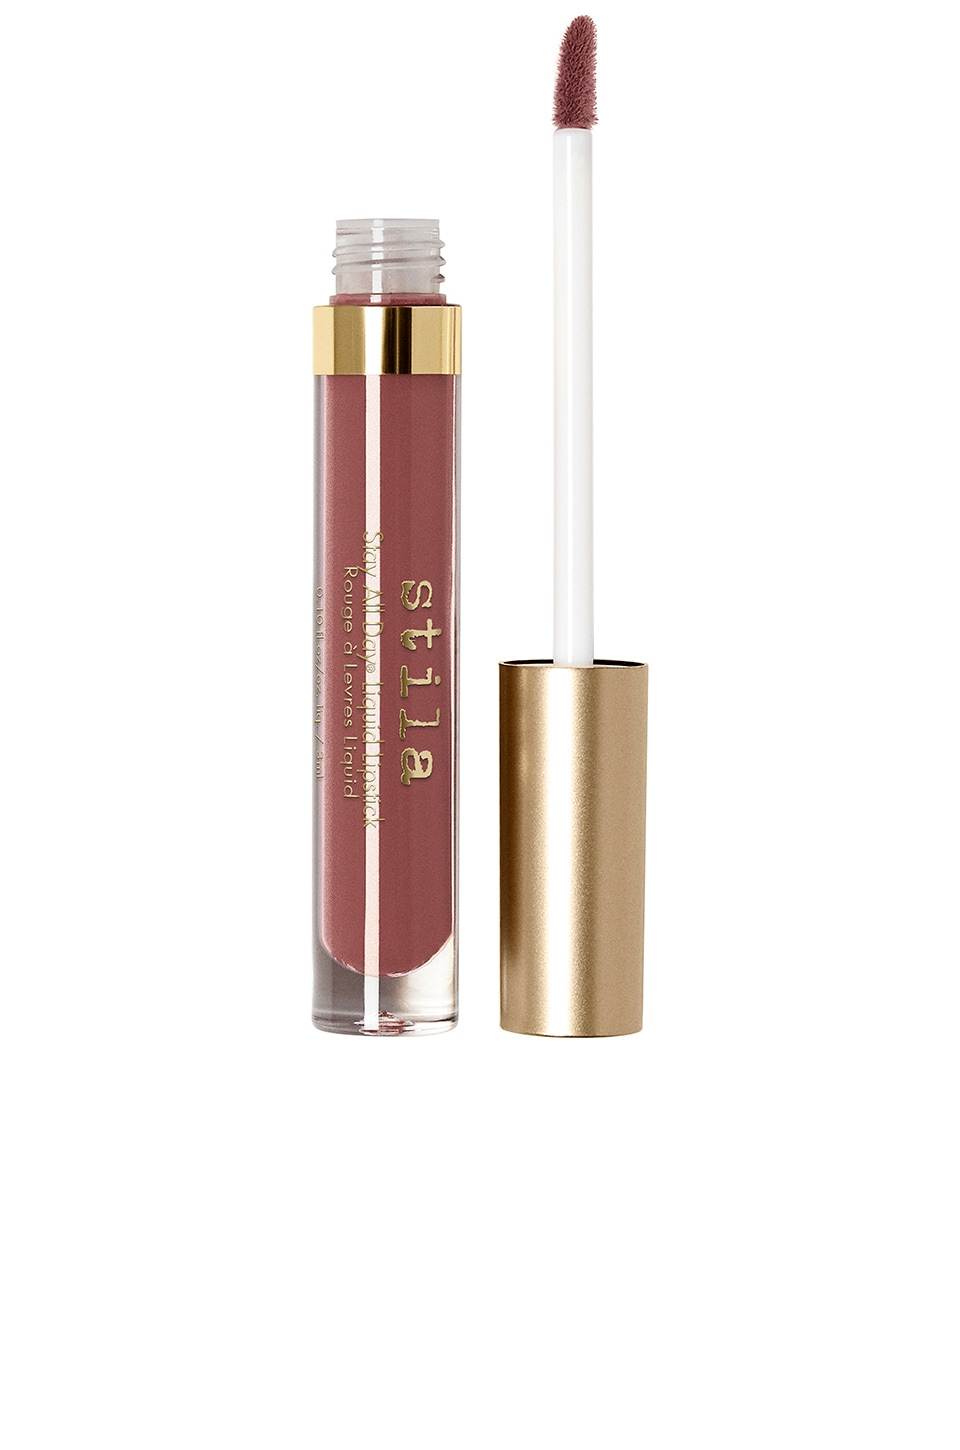 Stila LÁPIZ LABIAL LÍQUIDO STAY ALL DAY LIQUID LIPSTICK